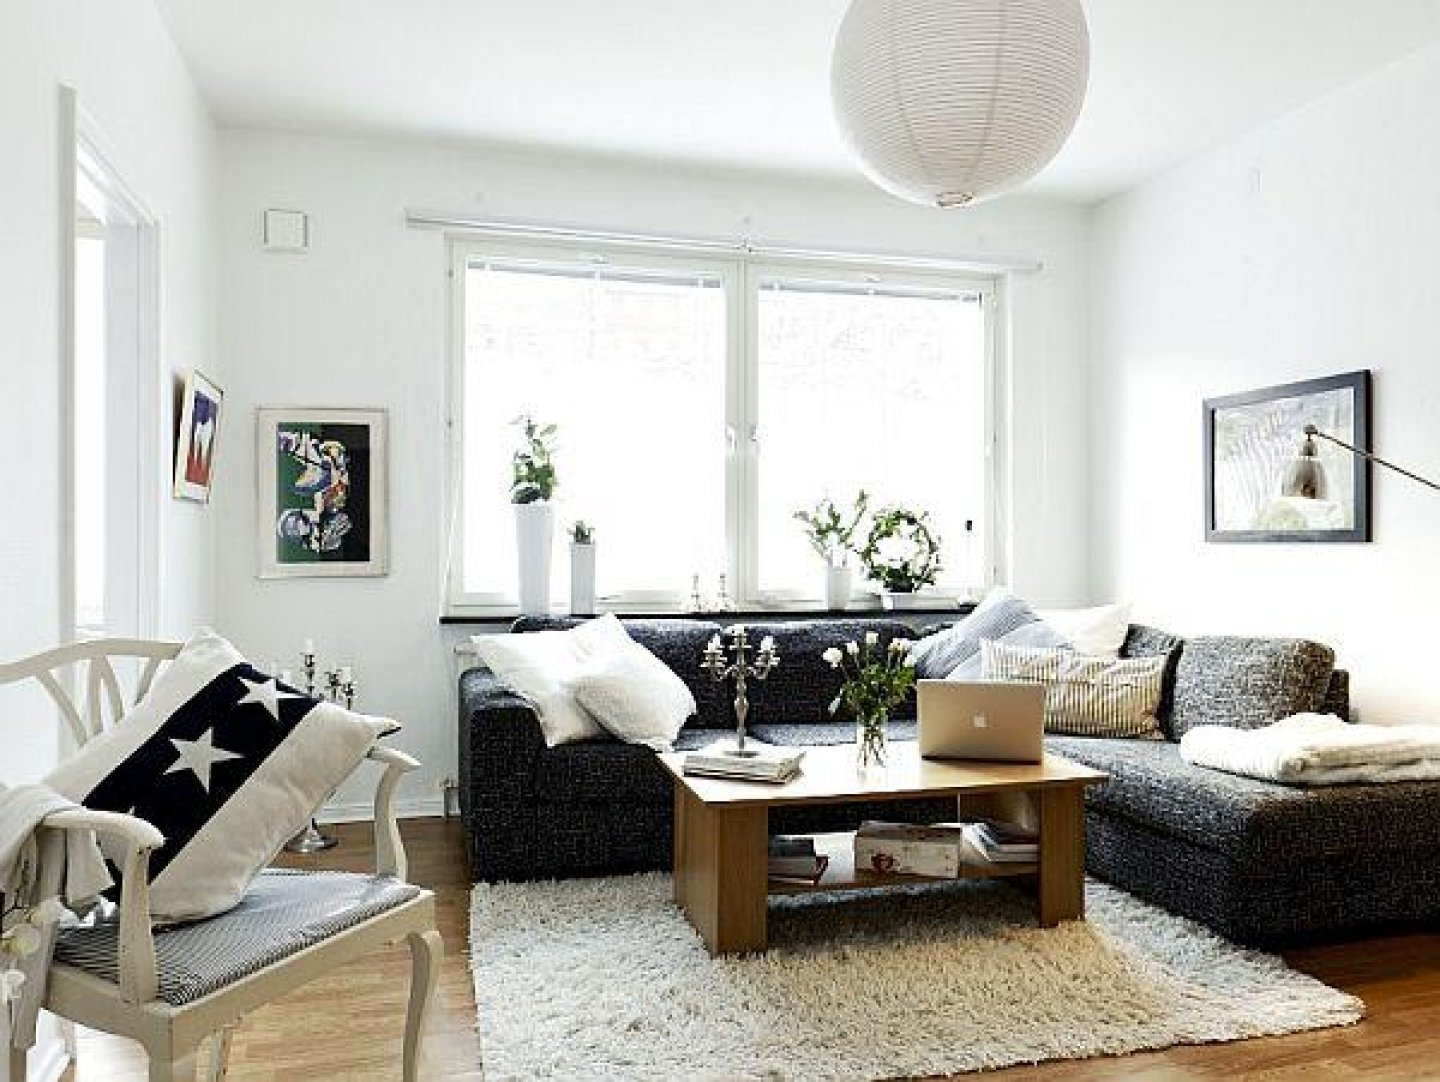 10 Nice Small Apartment Living Room Ideas apartment living room decorating ideas small apartment floor plans 2020